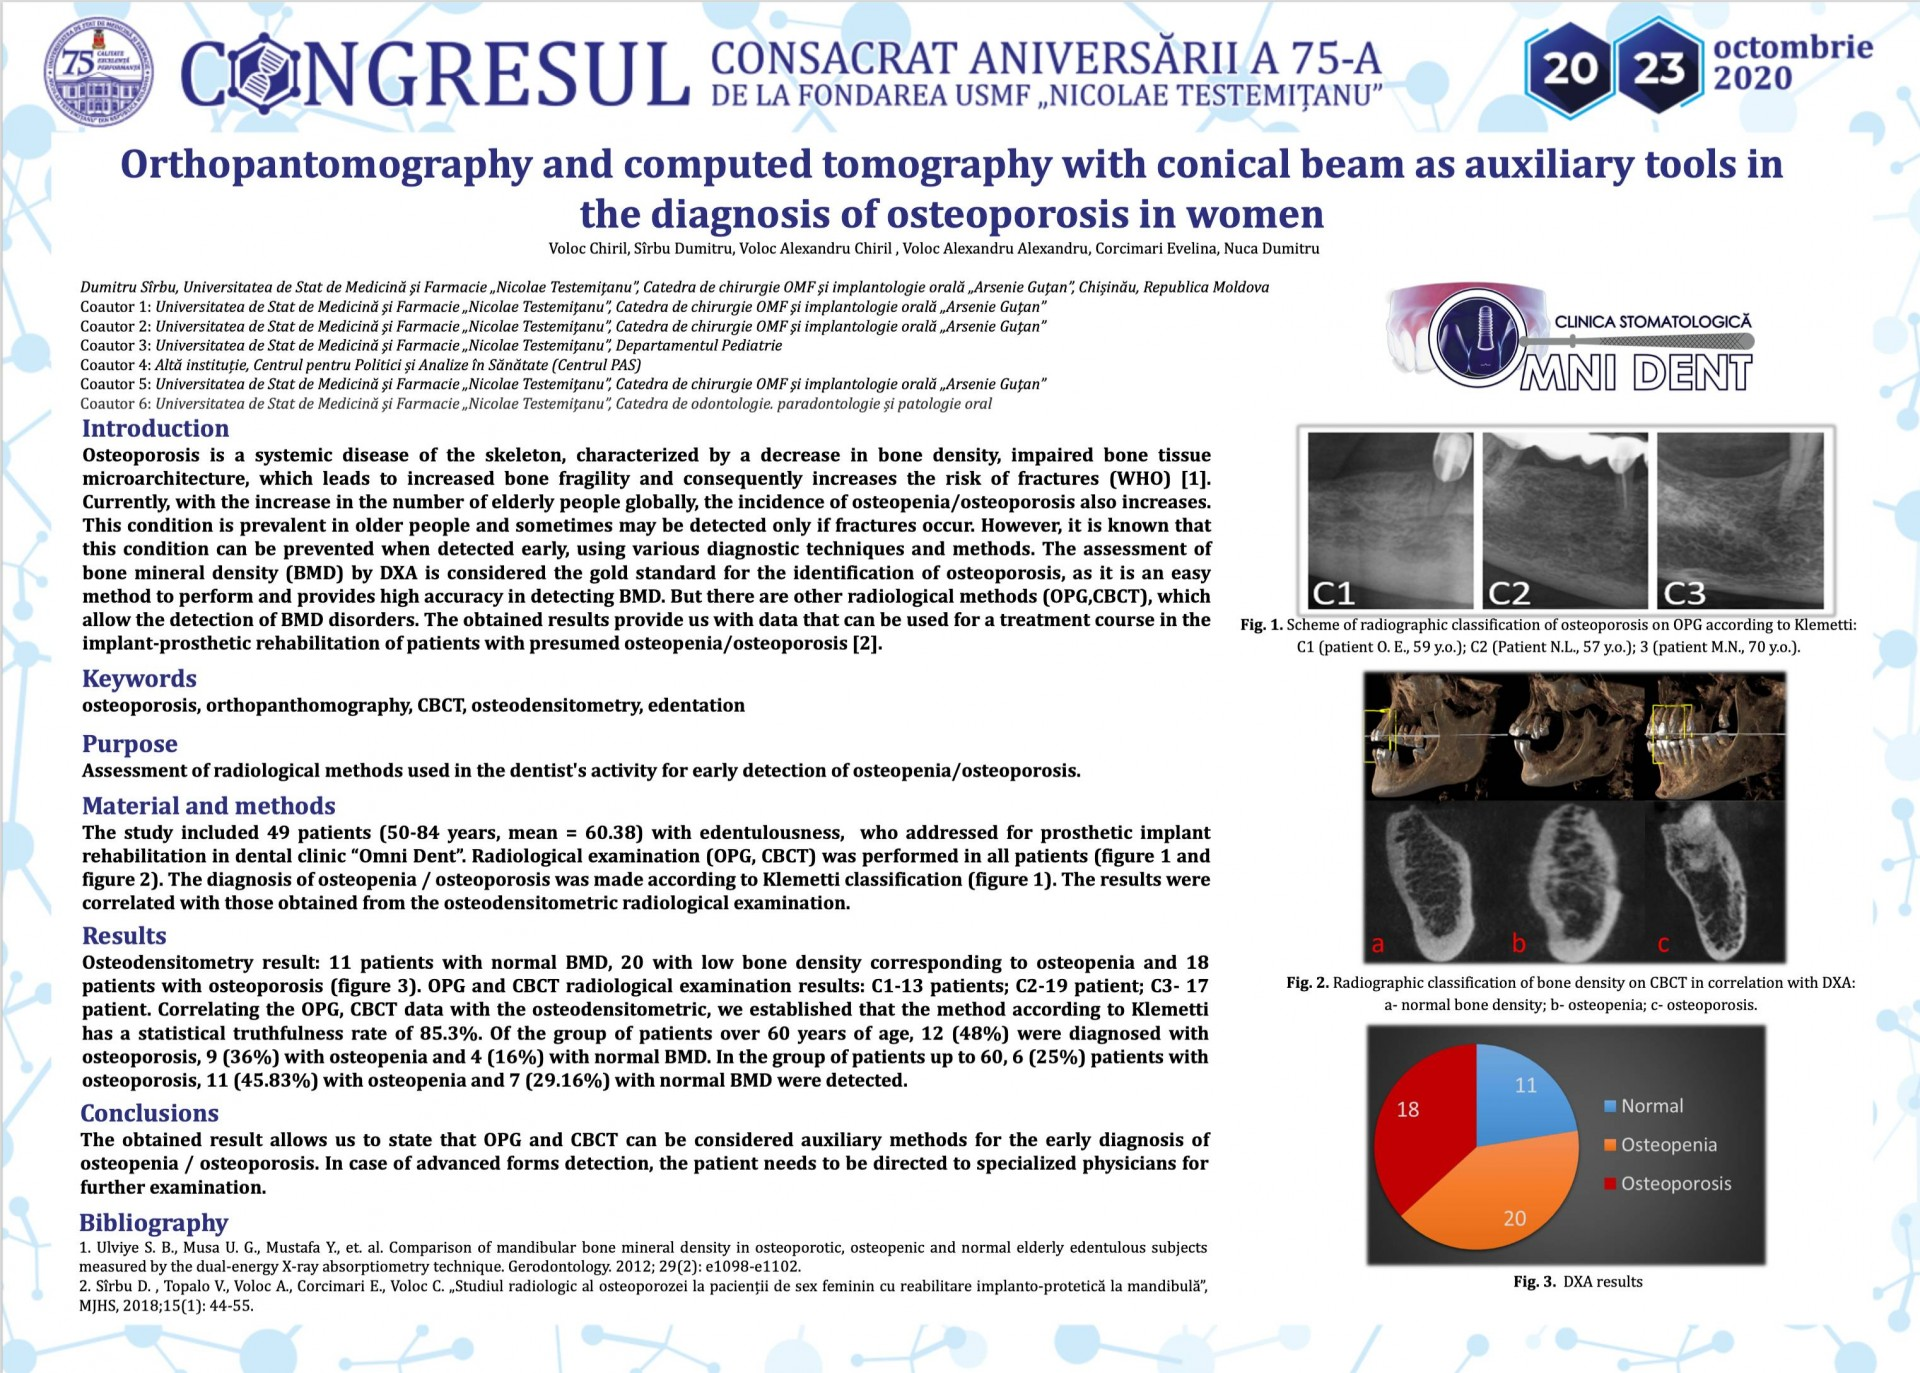 Orthopantomography and computed tomography with conical beam as auxiliary tools in the diagnosis of osteoporosis in women